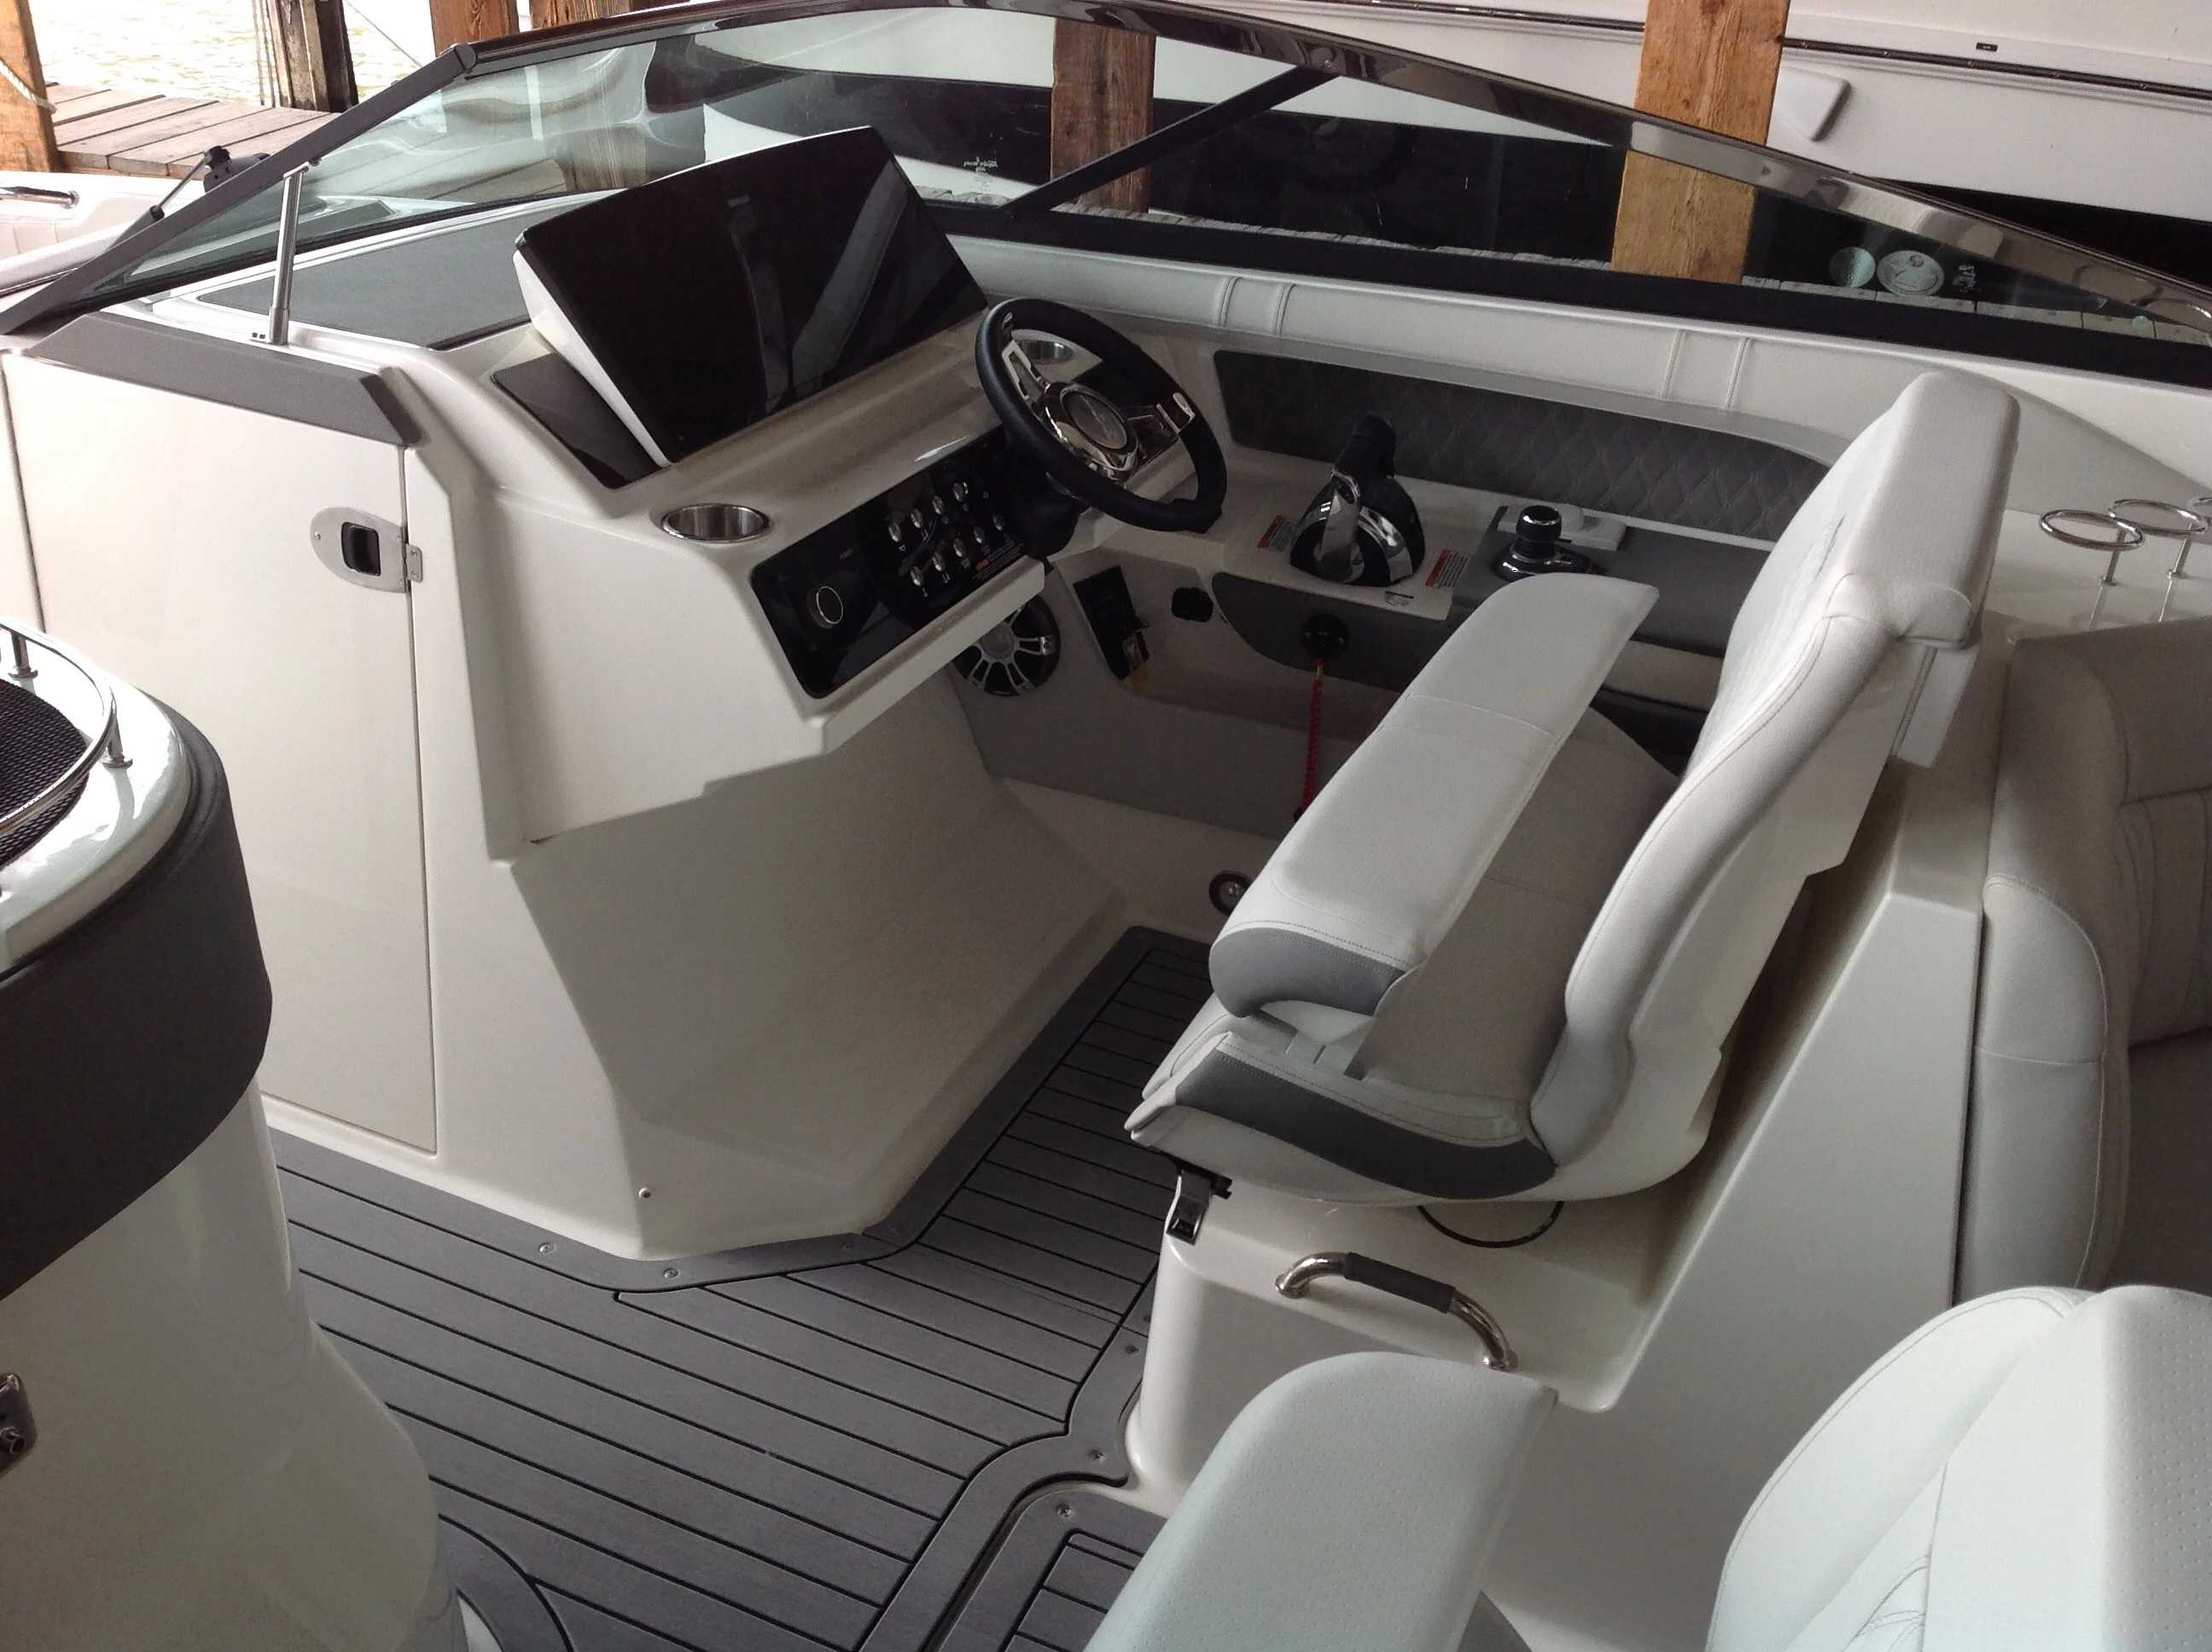 2021 Sea Ray boat for sale, model of the boat is 310 SLX & Image # 8 of 20